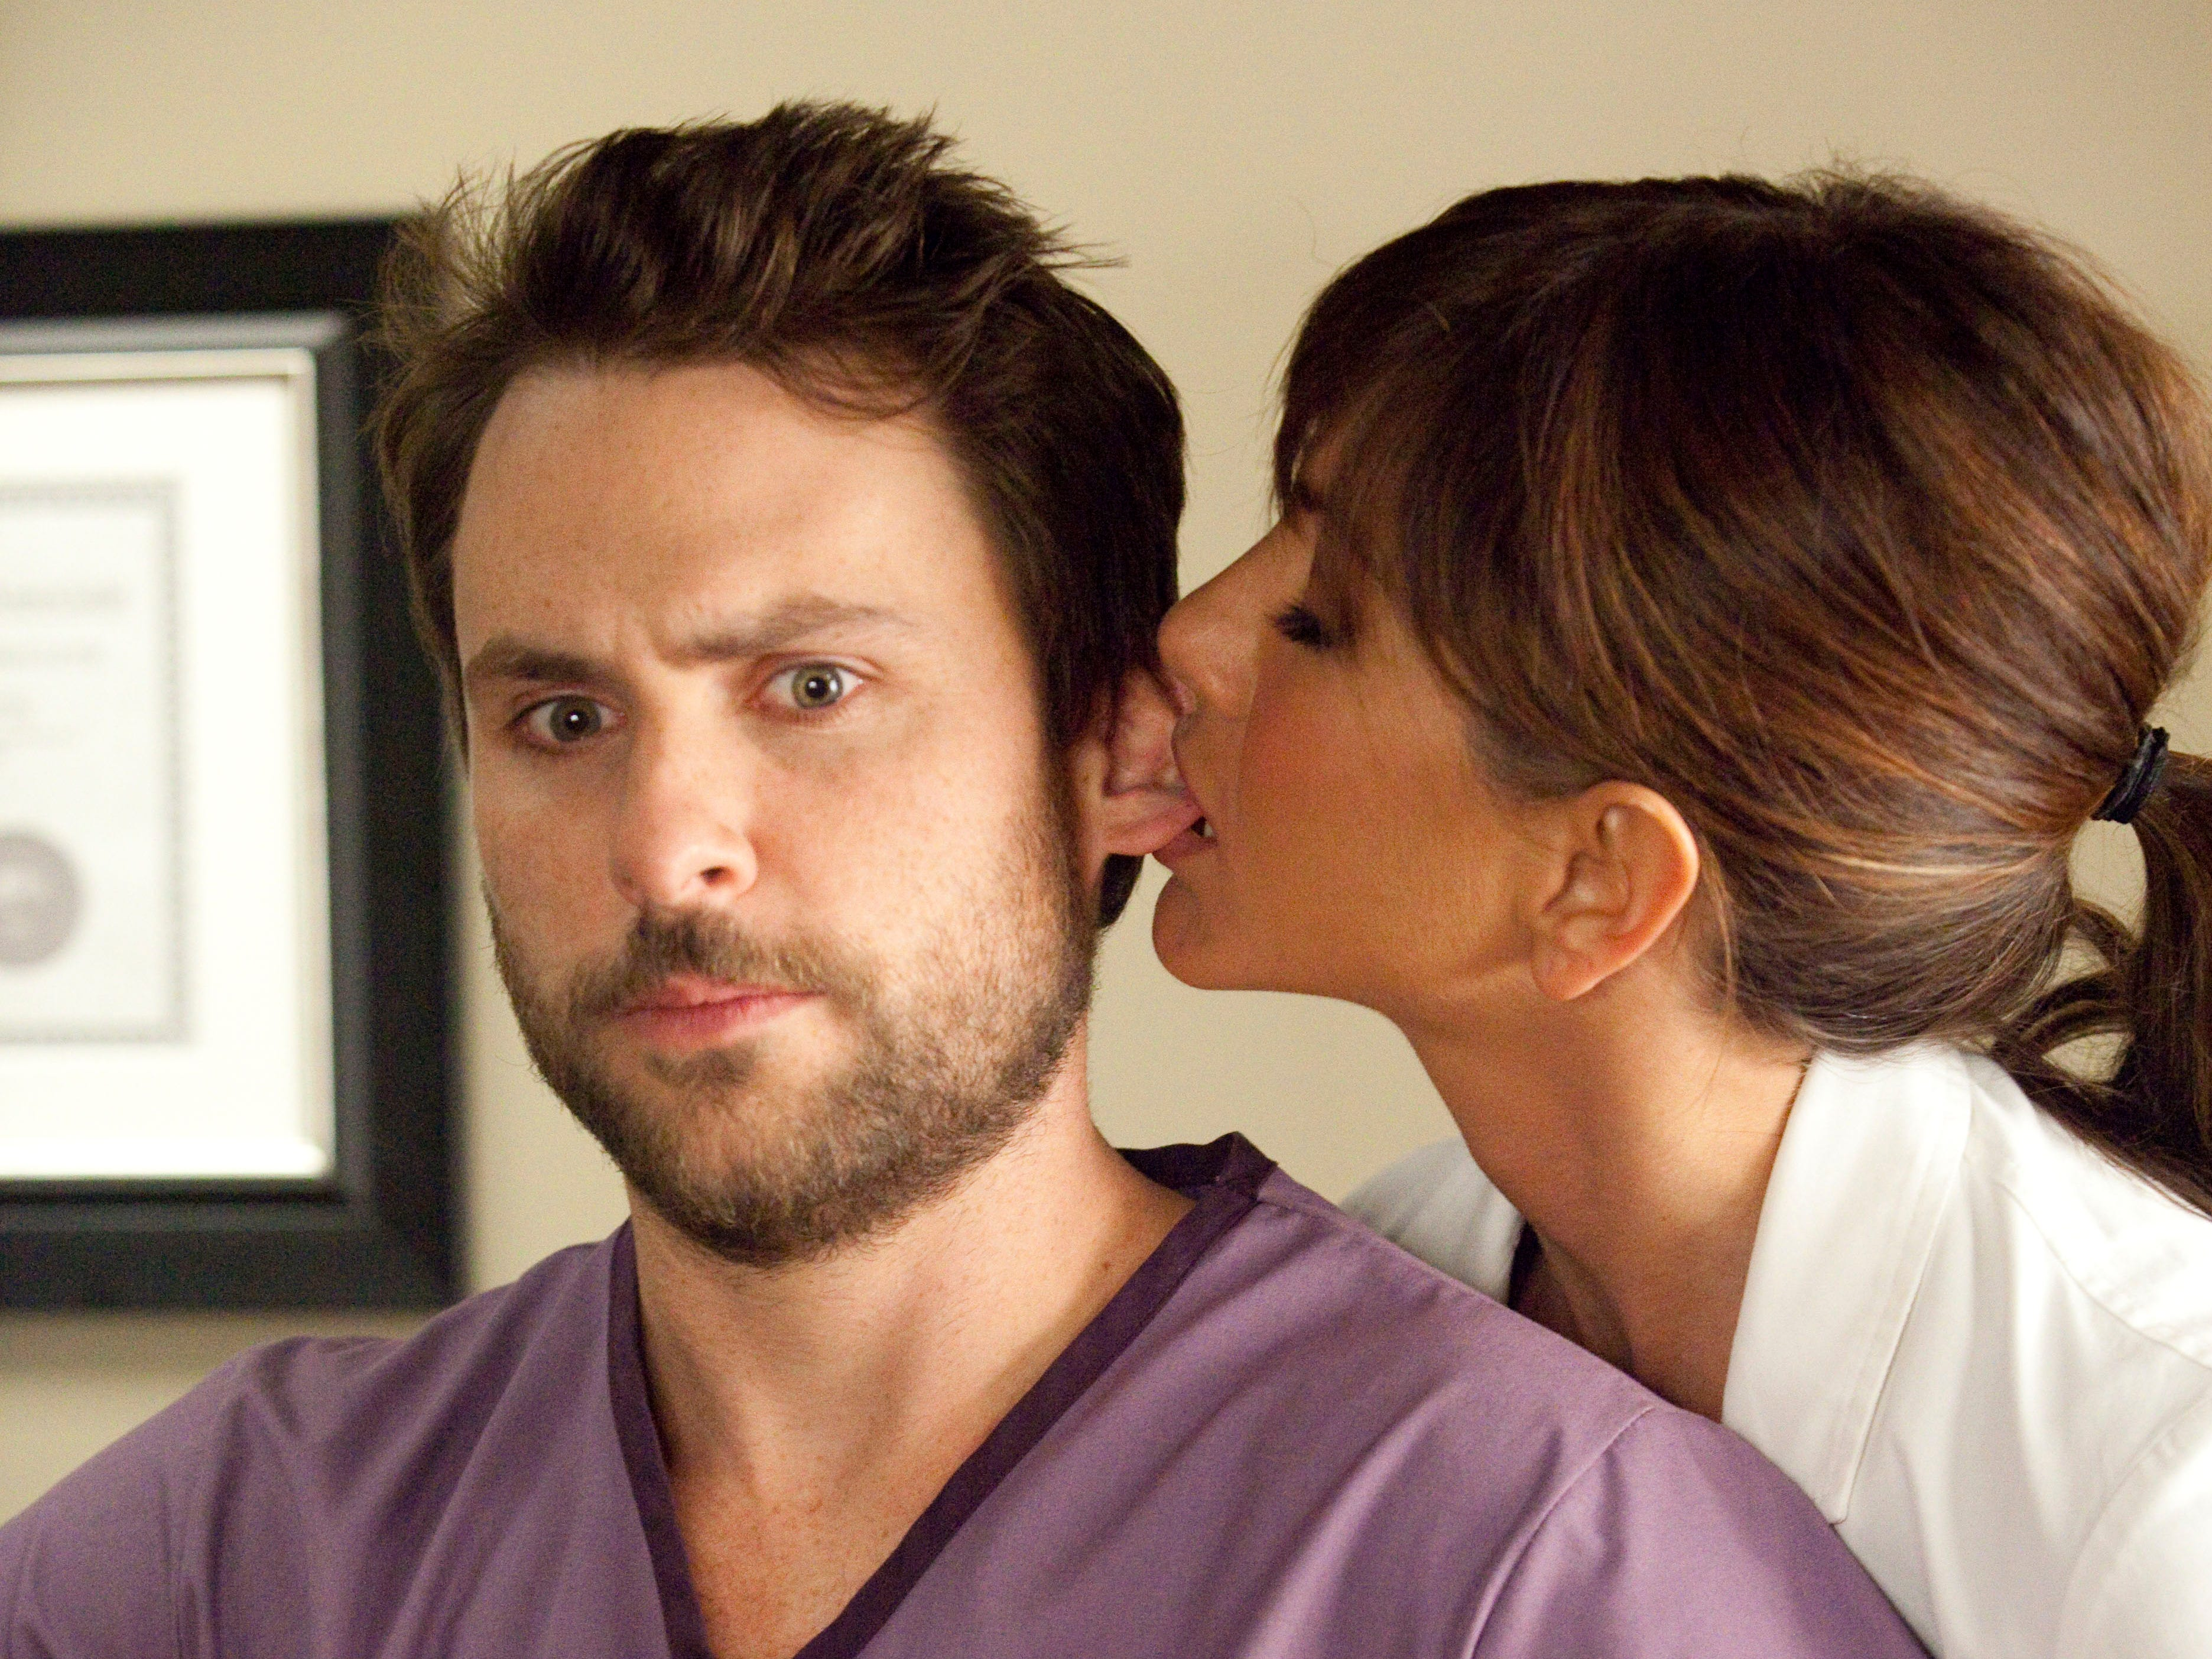 """In 2001, Aniston played a dentist with a penchant for sexual harassment in """"Horrible Bosses."""" Here, she acts inappropriately with her assistant, played by Charlie Day."""